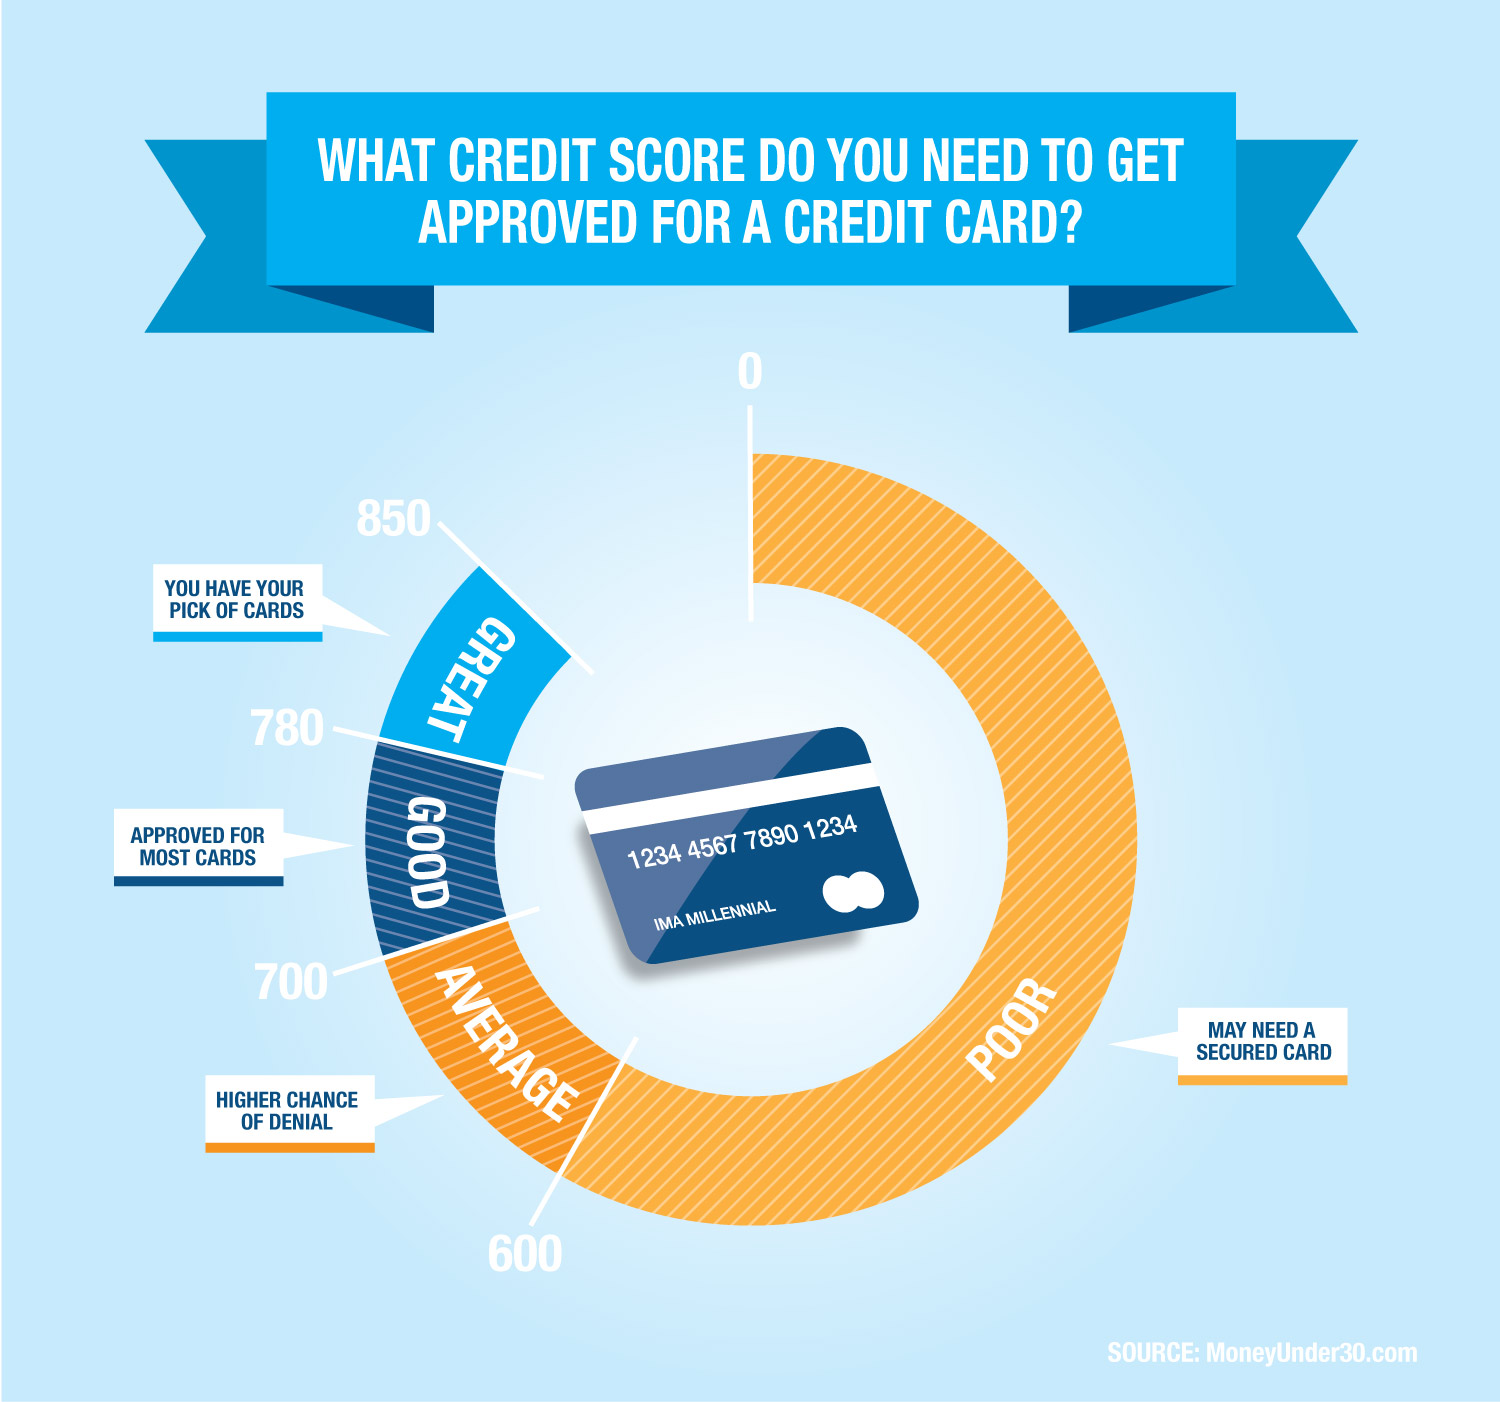 Credit Cards For Credit Score Under 600 >> Credit Scores Rule Access To Finance Geoff Charles Medium